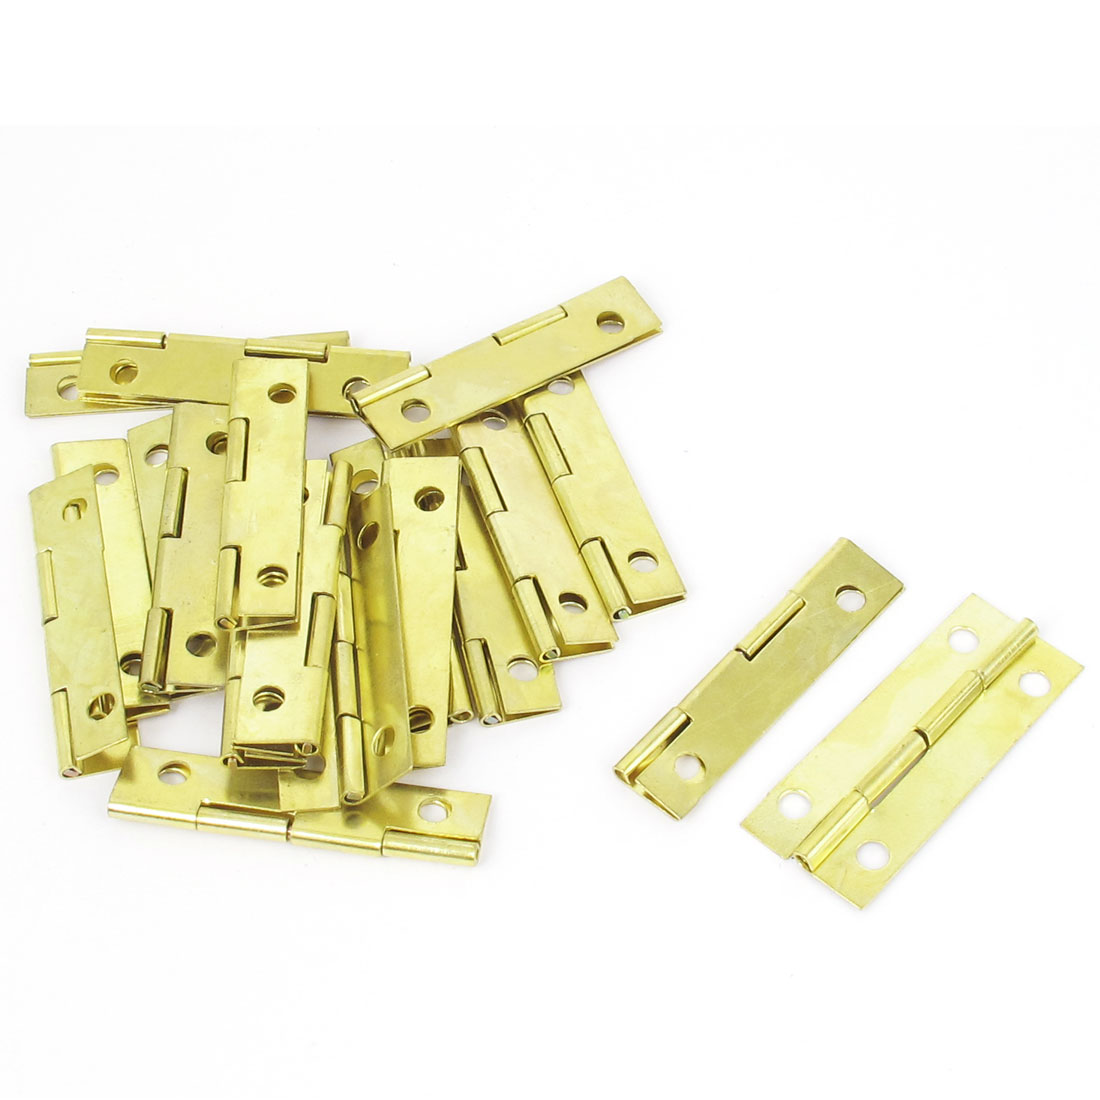 Home Furniture Cupboard Cabinet Gate Foldable Door Butt Hinges Gold Tone 20pcs